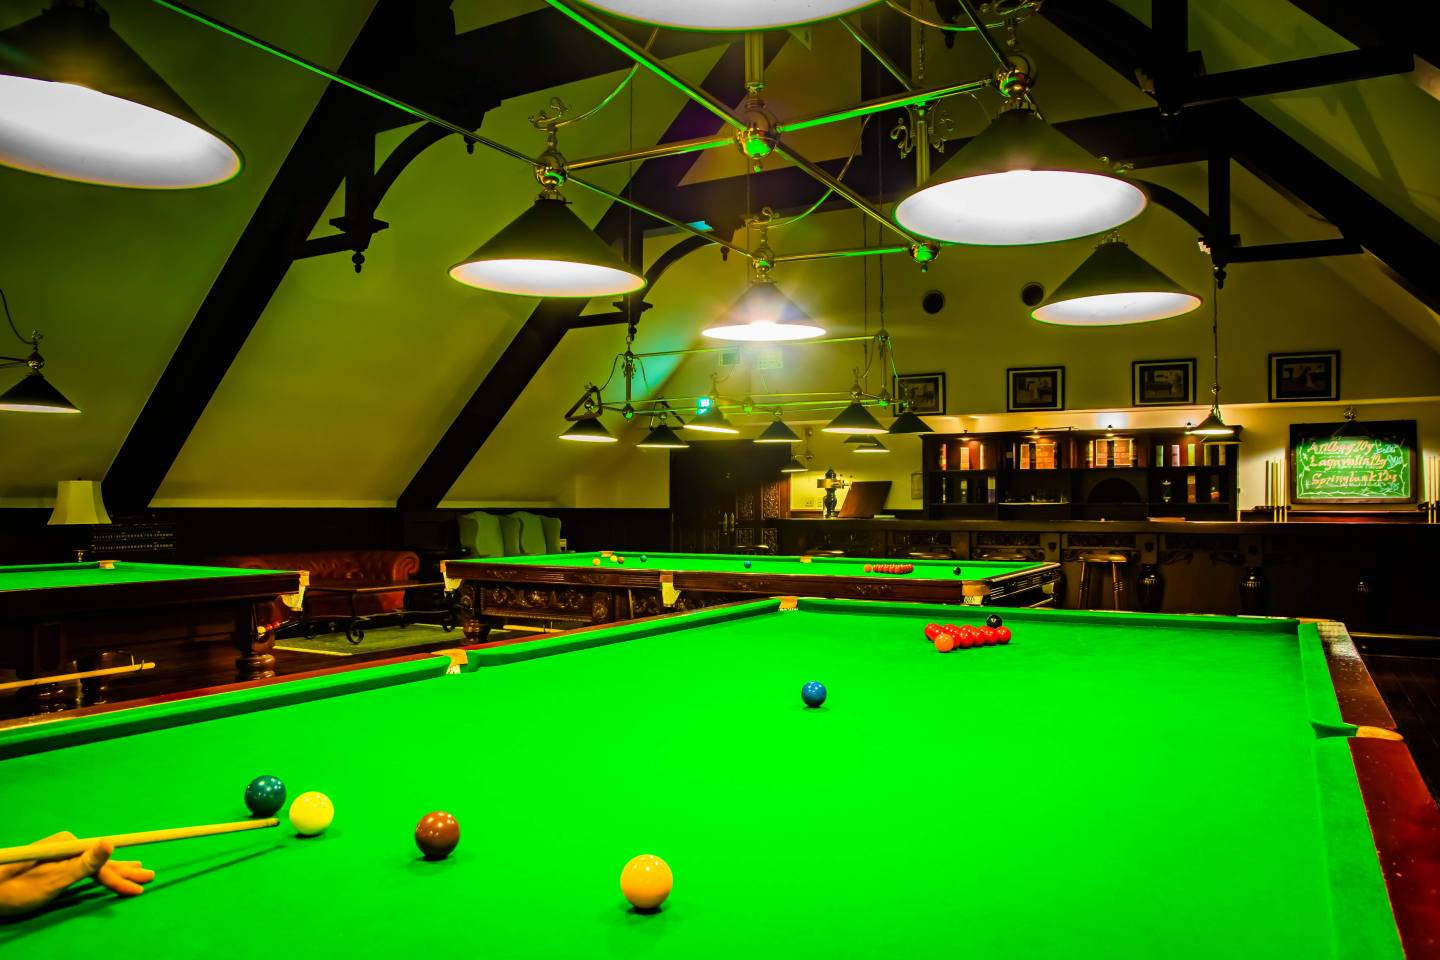 Snooker Room: A British origin tradition invented in the 18th century. There are three full-size Thurston mahogany snooker tables imported from Liverpool, England.